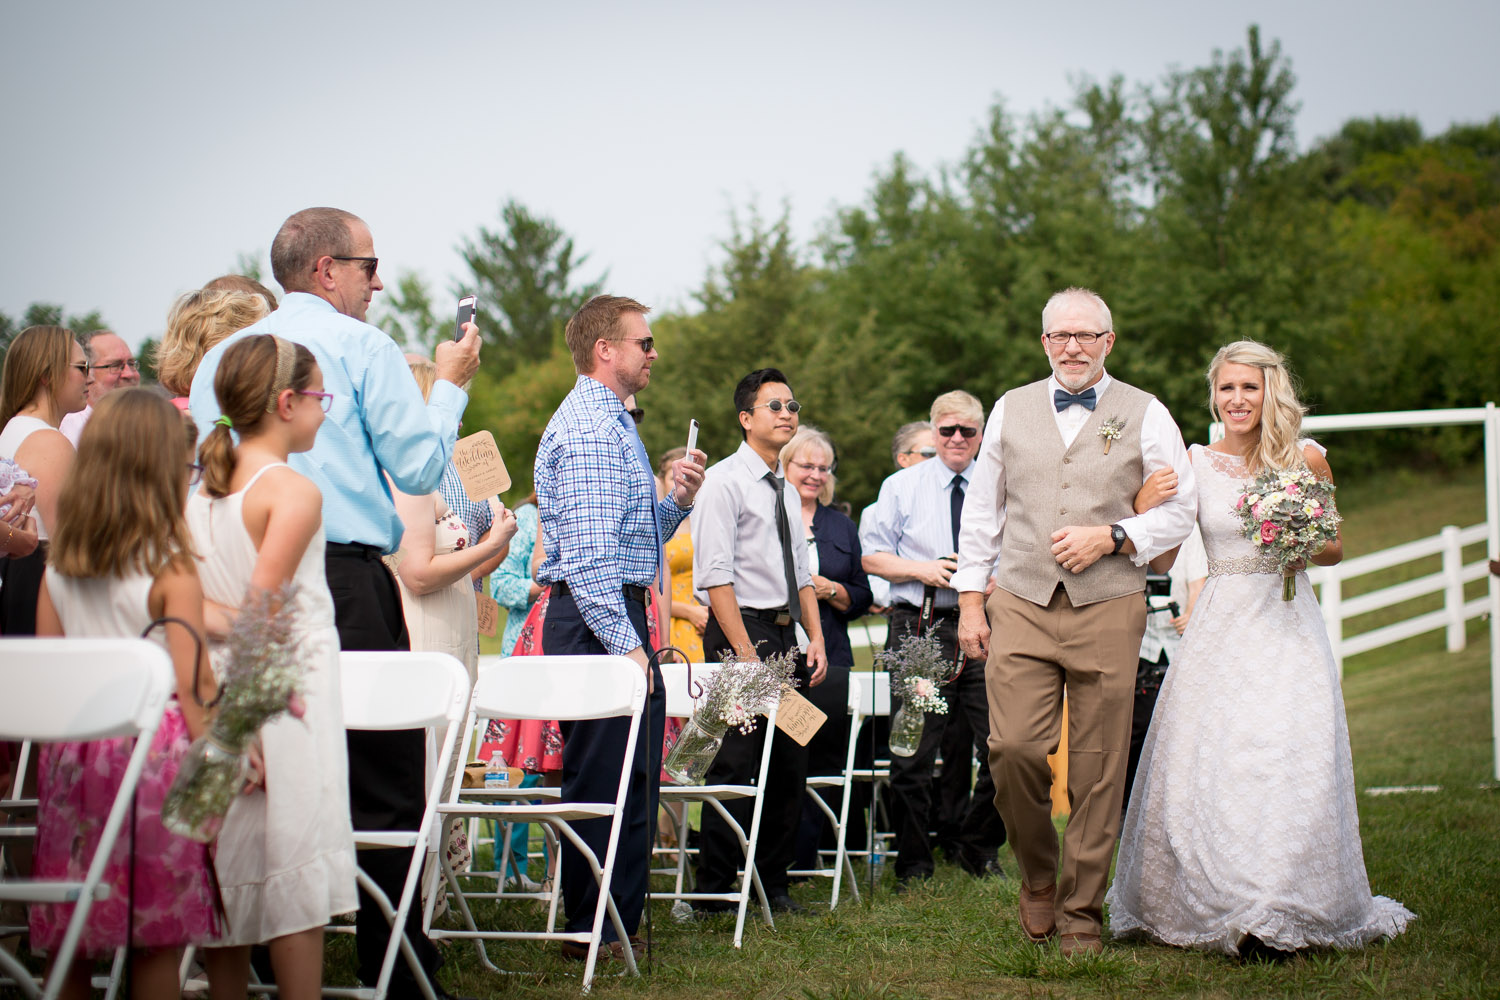 15-dellwood-barn-weddings-minnesota-wedding-photographer-outdoor-summer-ceremony-grassy-field-here-comes-the-bride-father-daughter-mahonen-photography.jpg